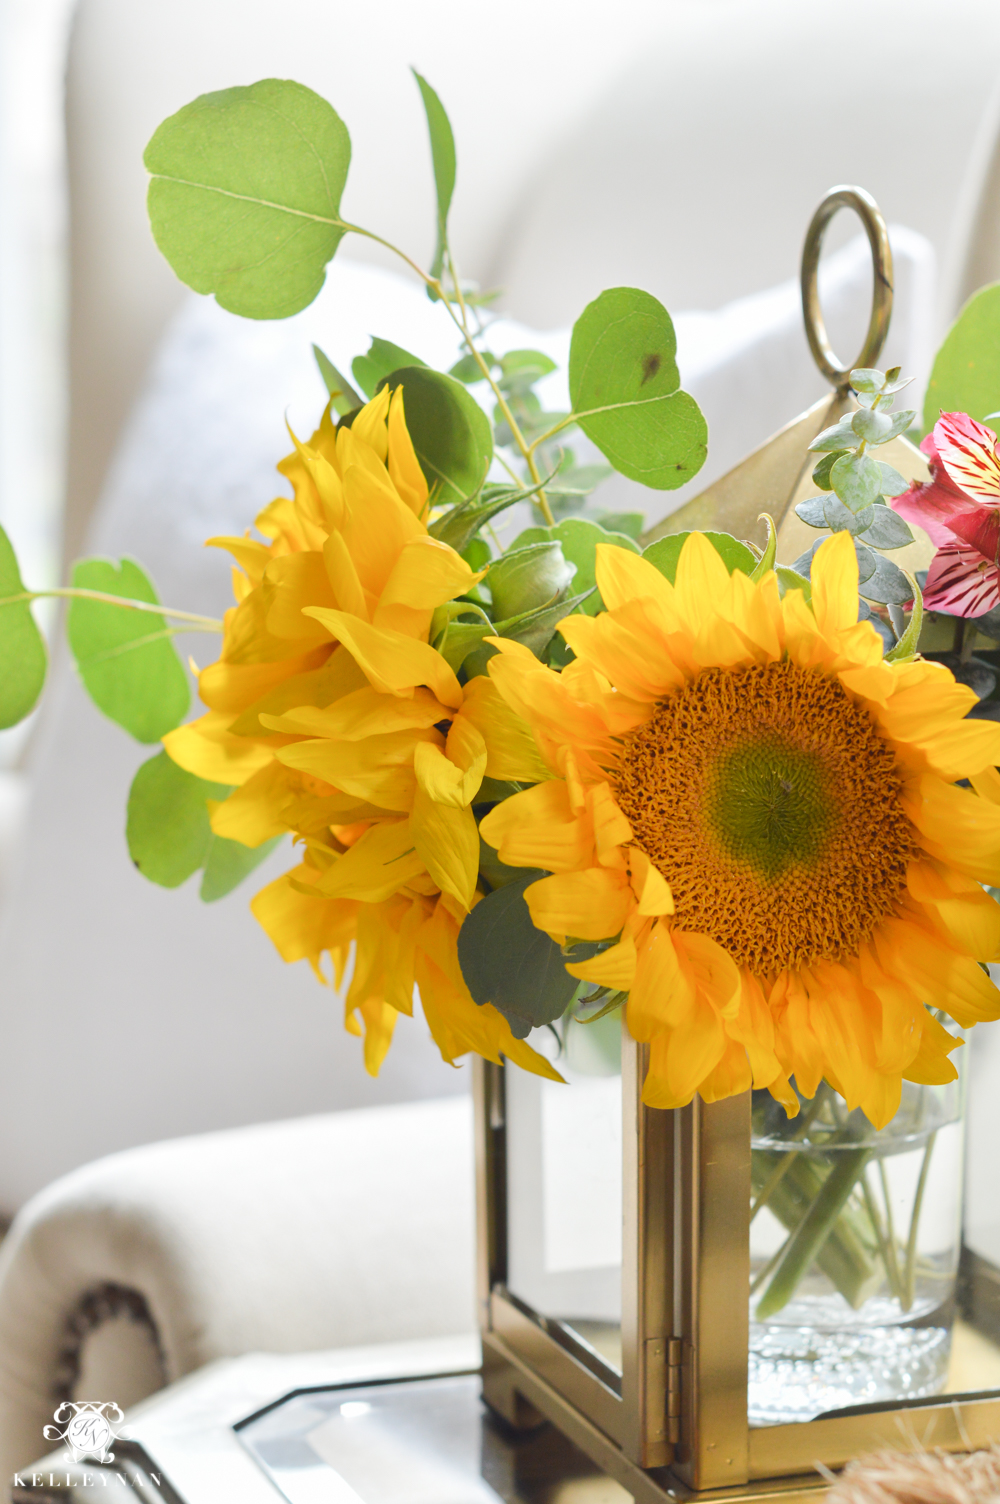 Floral Arrangement in Lantern- sunflowers and eucalyptus in small gold lantern